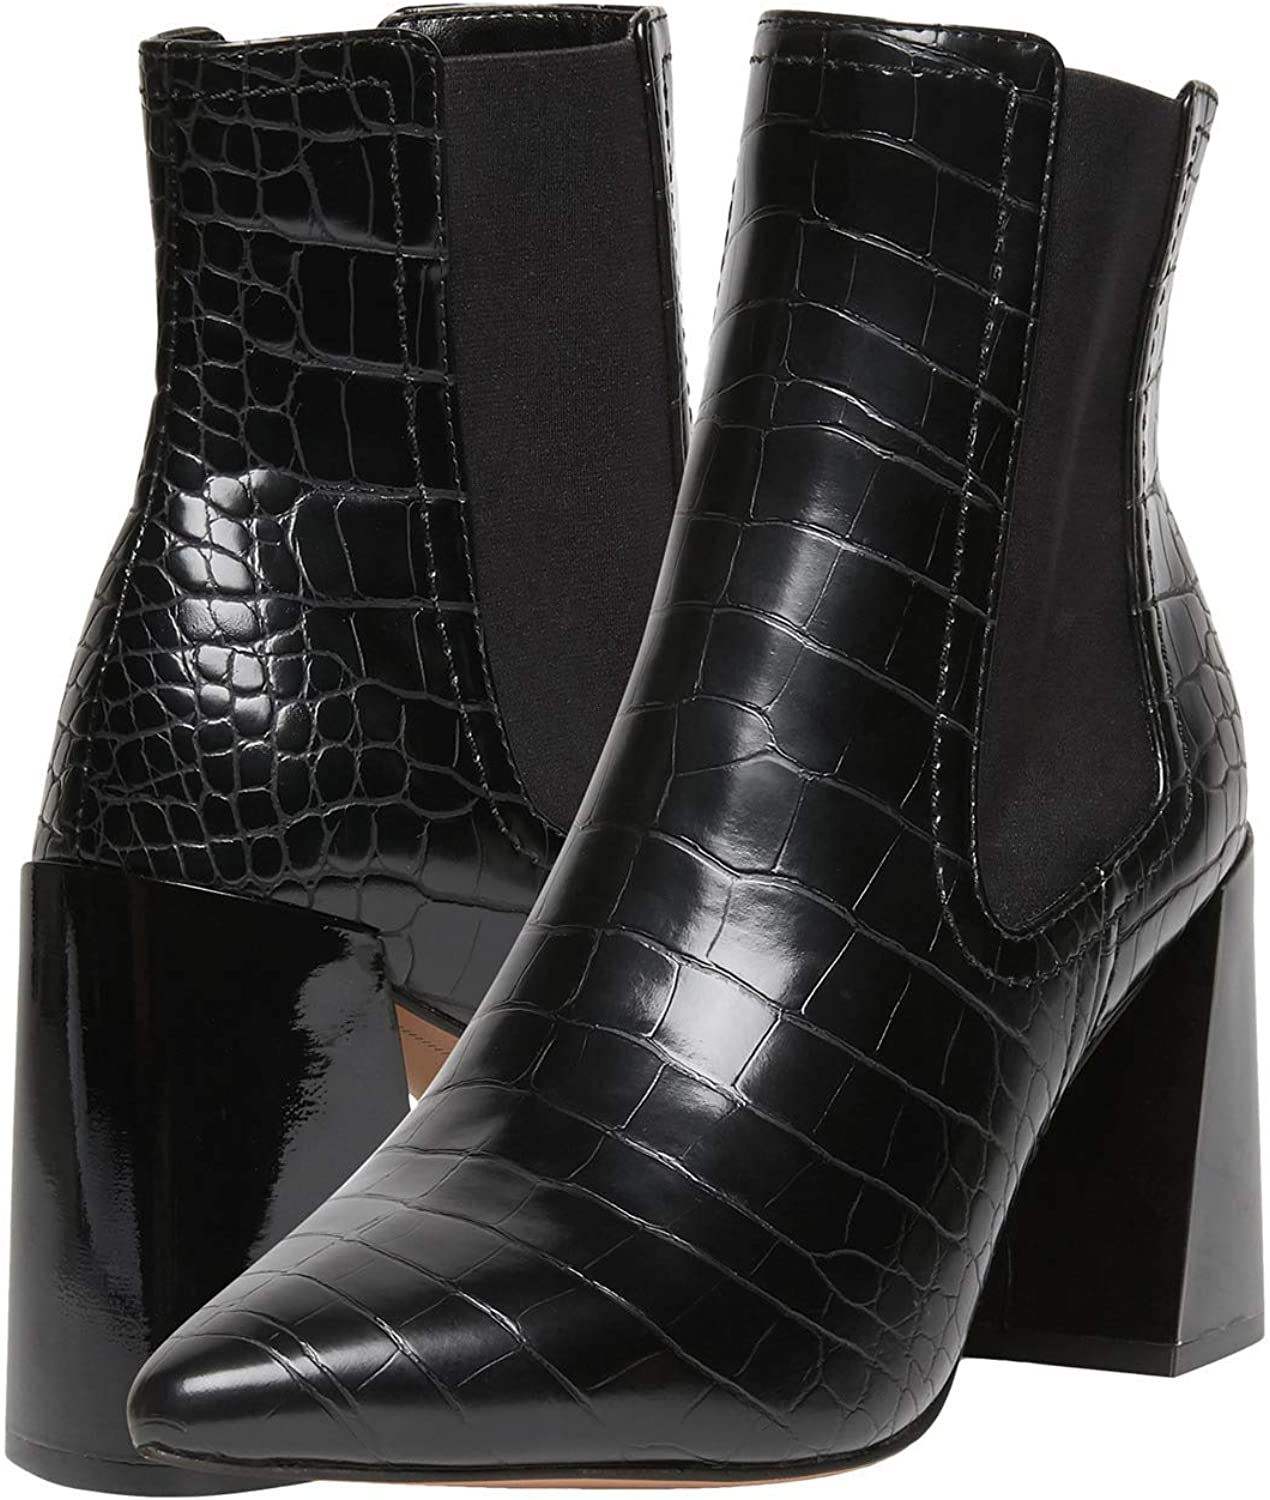 Steven New York NICO Bootie, Black Croc, 10 M US